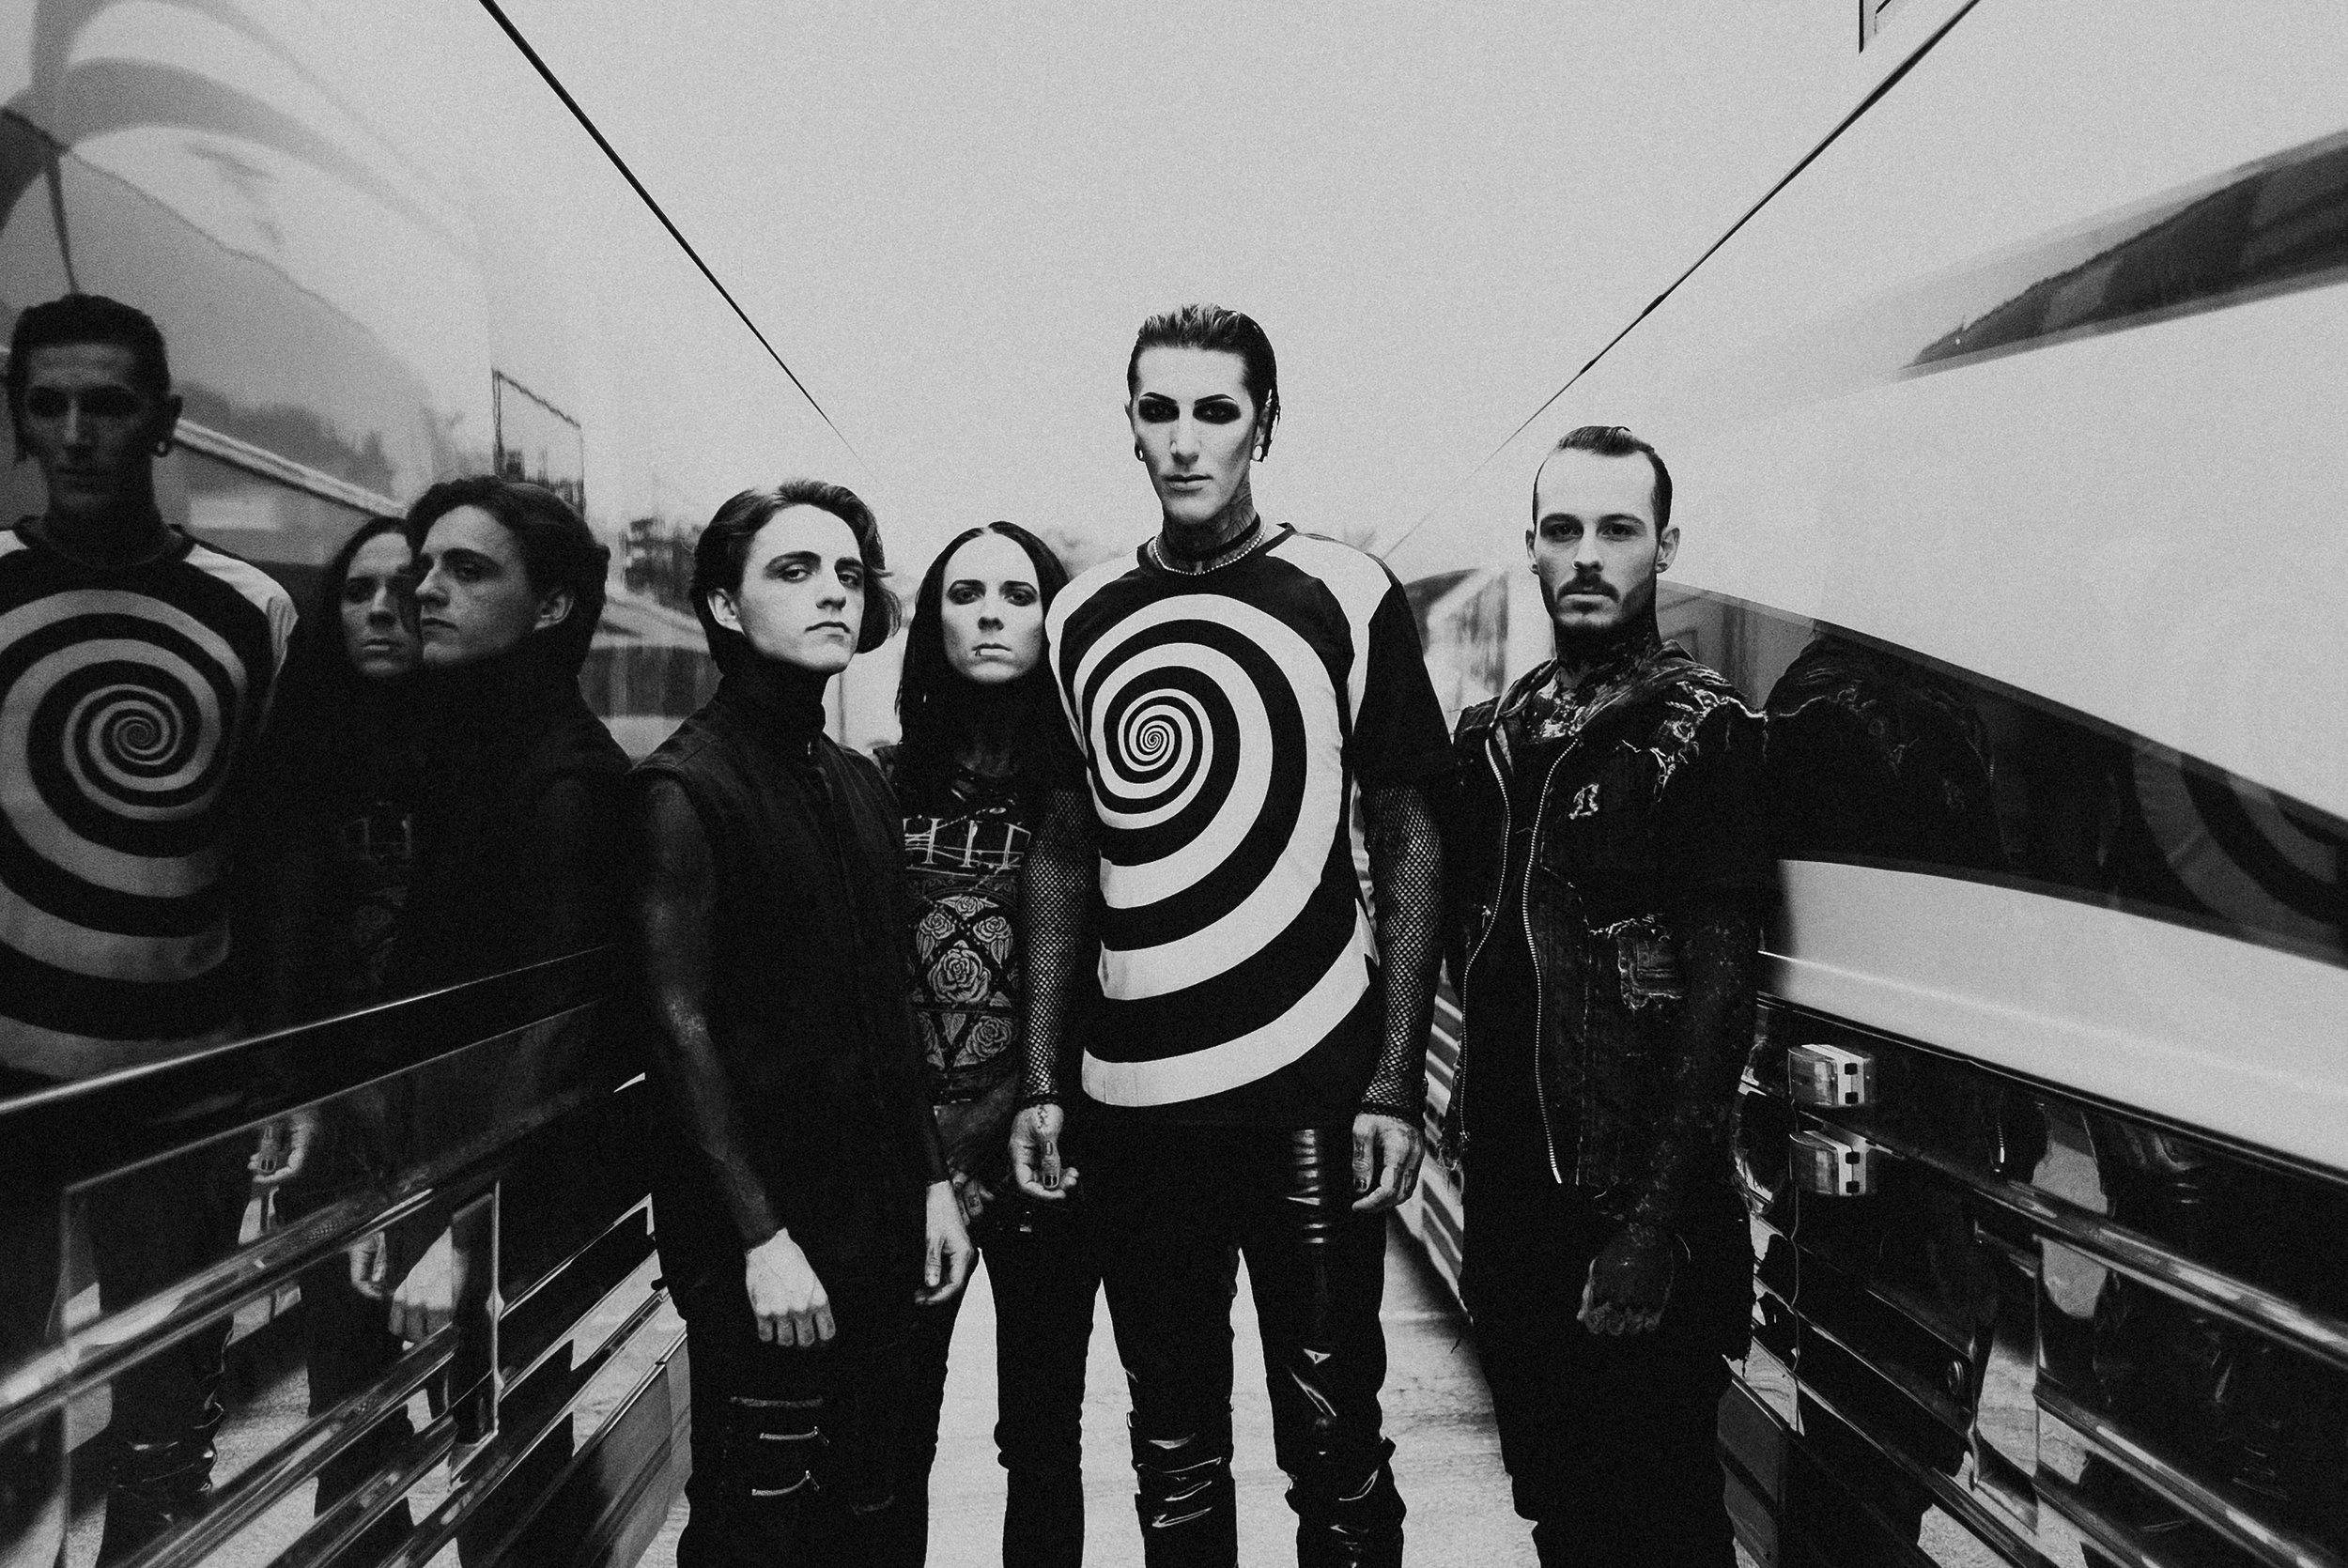 Motionless In White 2018 - San Antonio, TX